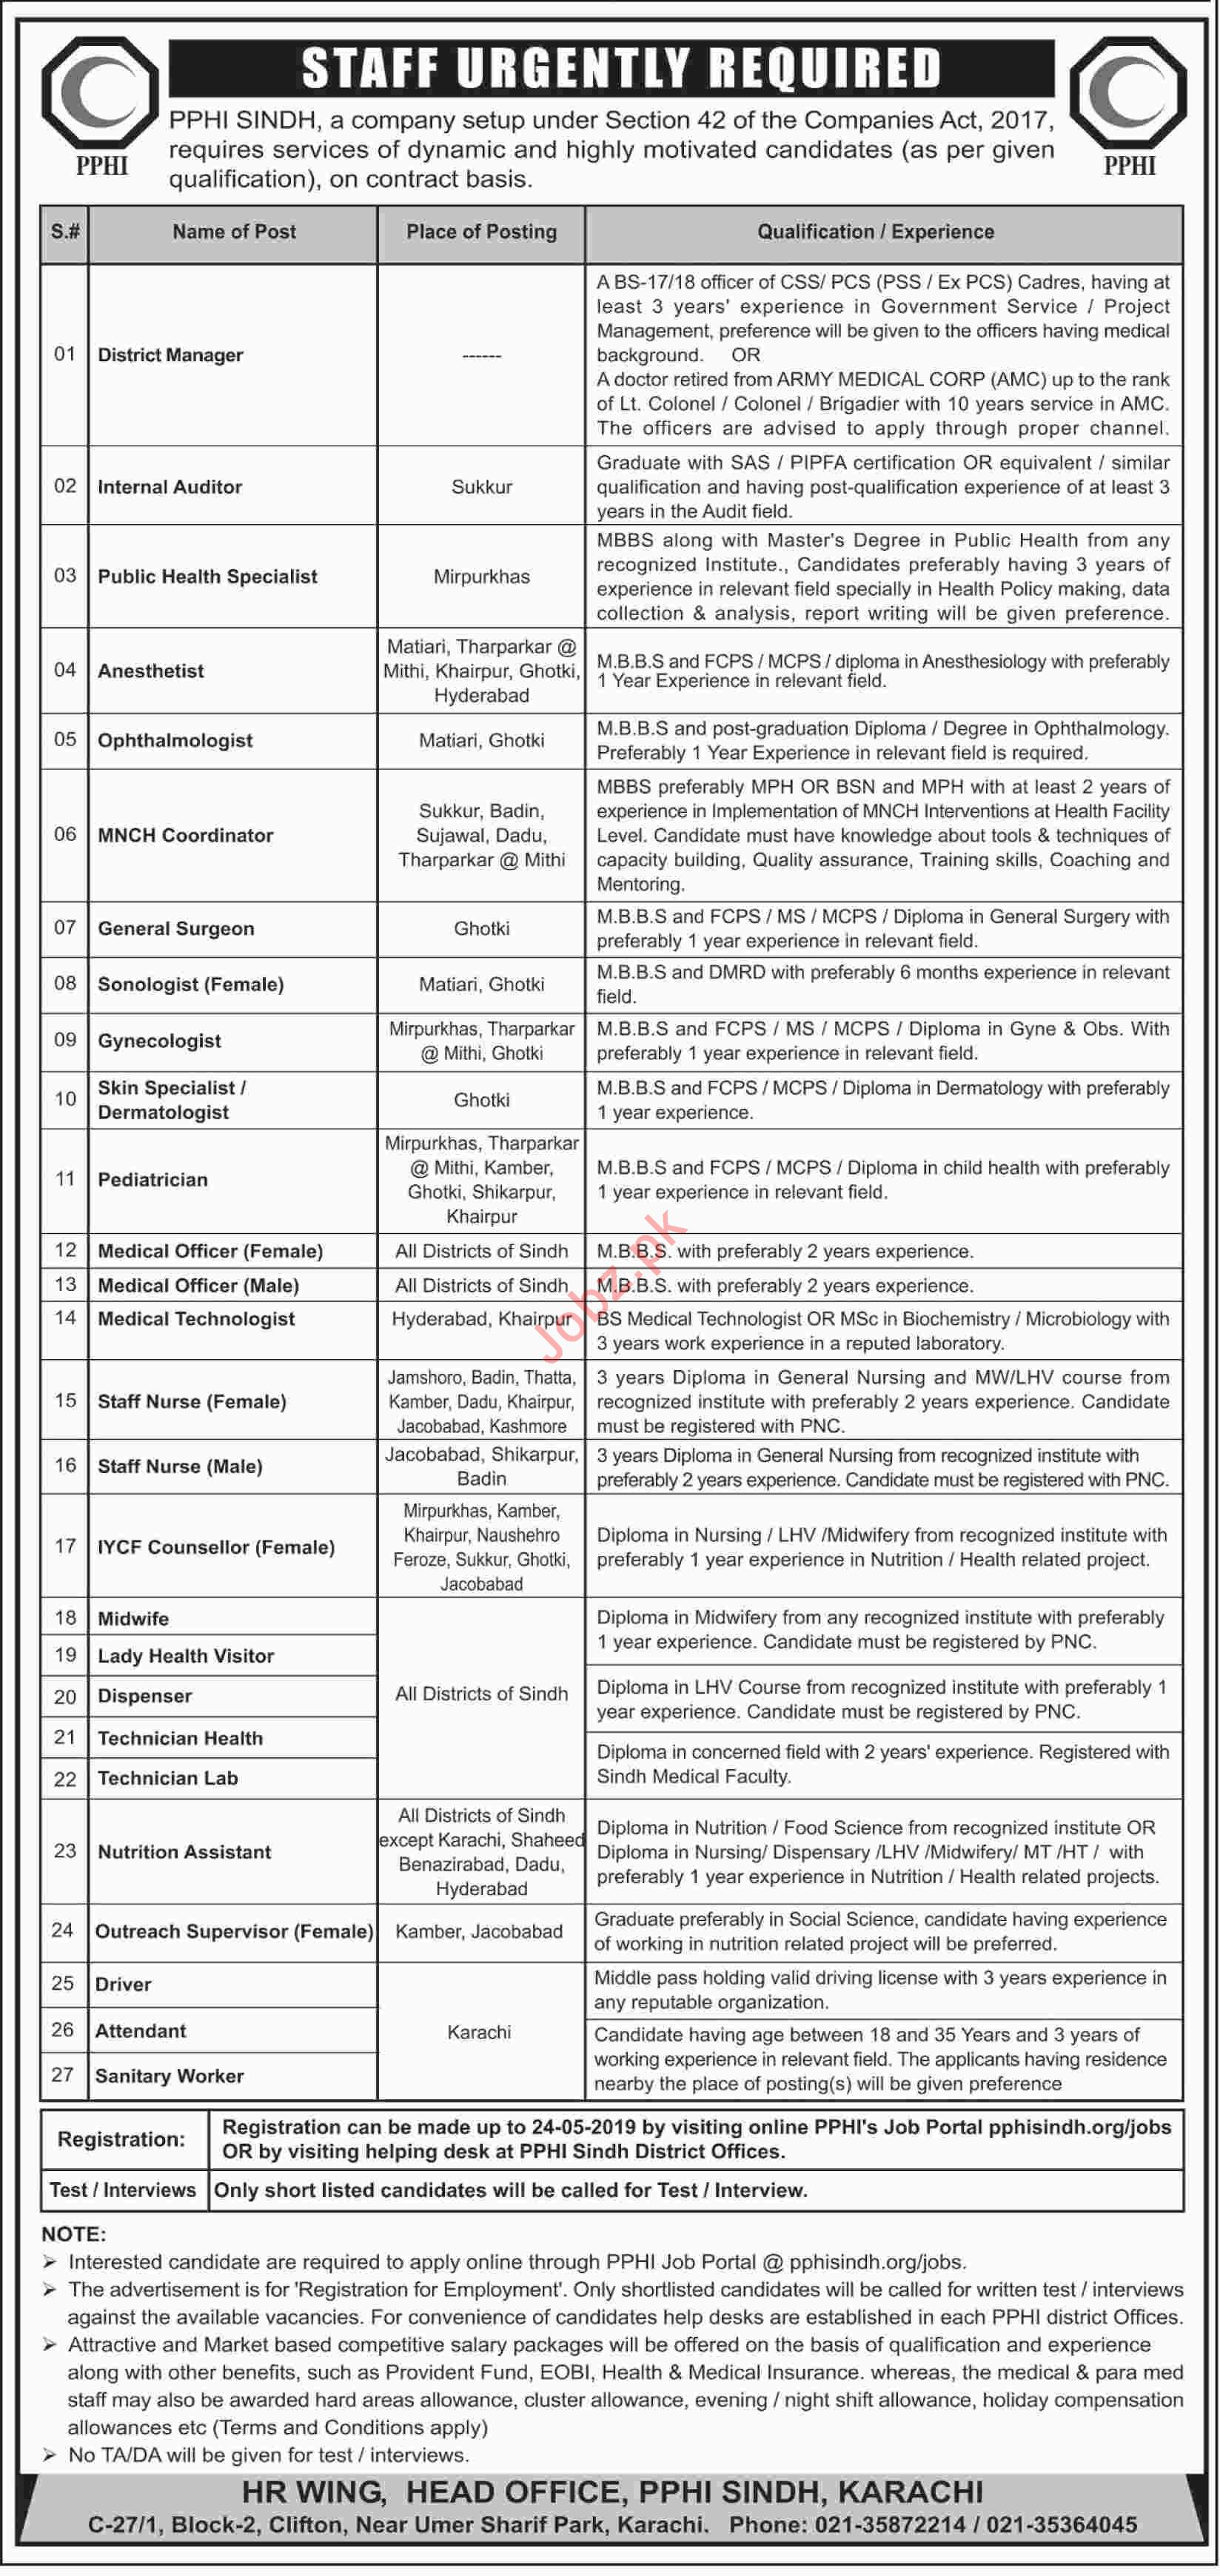 PPHI Sindh Jobs 2019 for Surgeon & Medical Officers